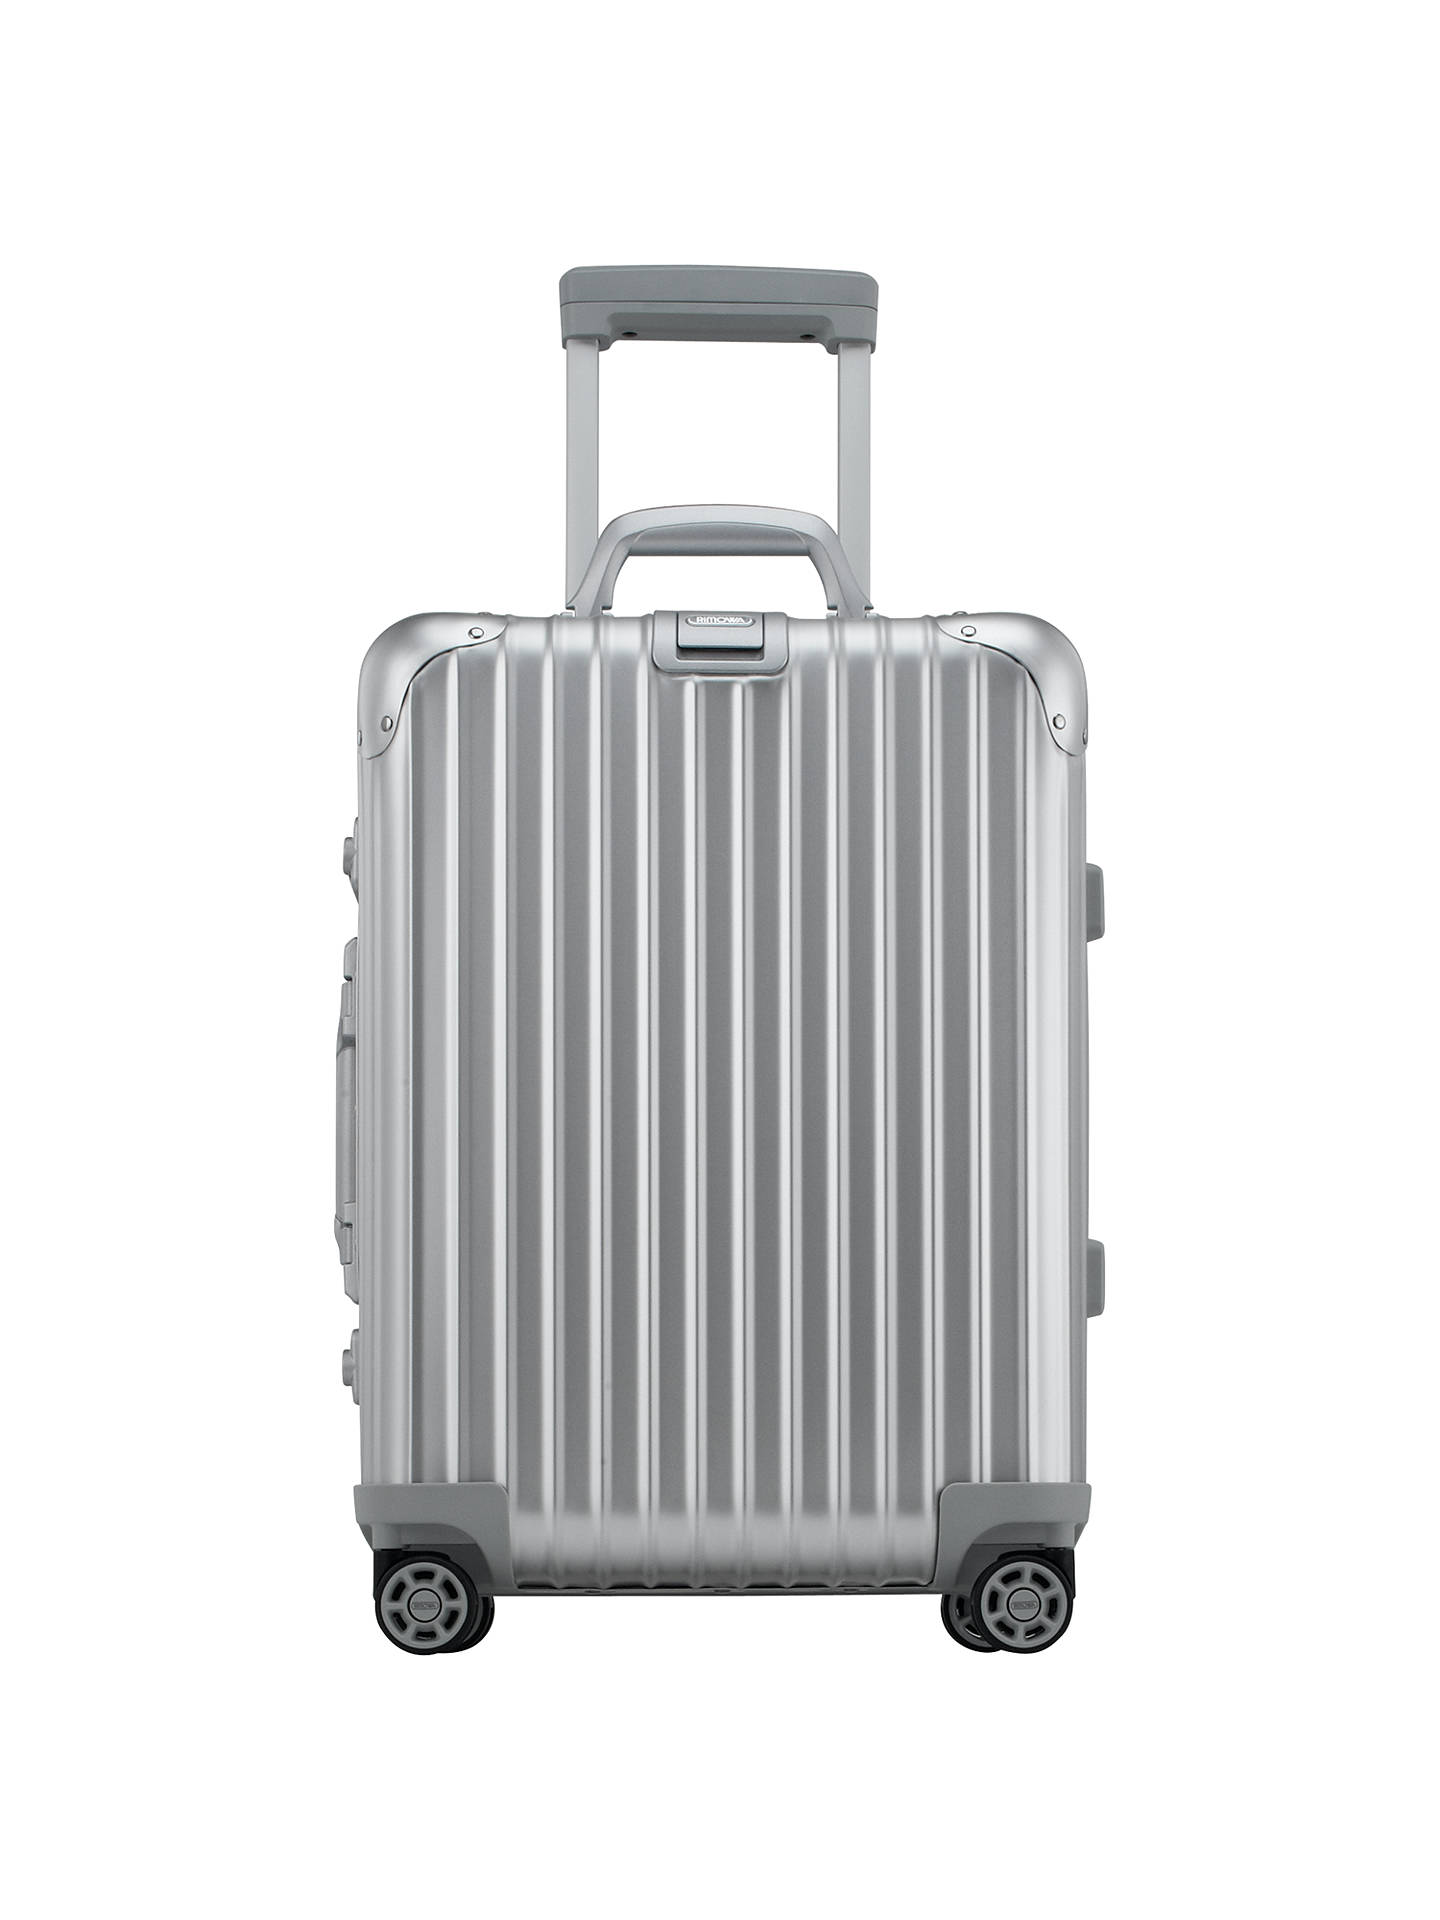 rimowa topas cabin trolley iata 55cm suitcase silver at. Black Bedroom Furniture Sets. Home Design Ideas